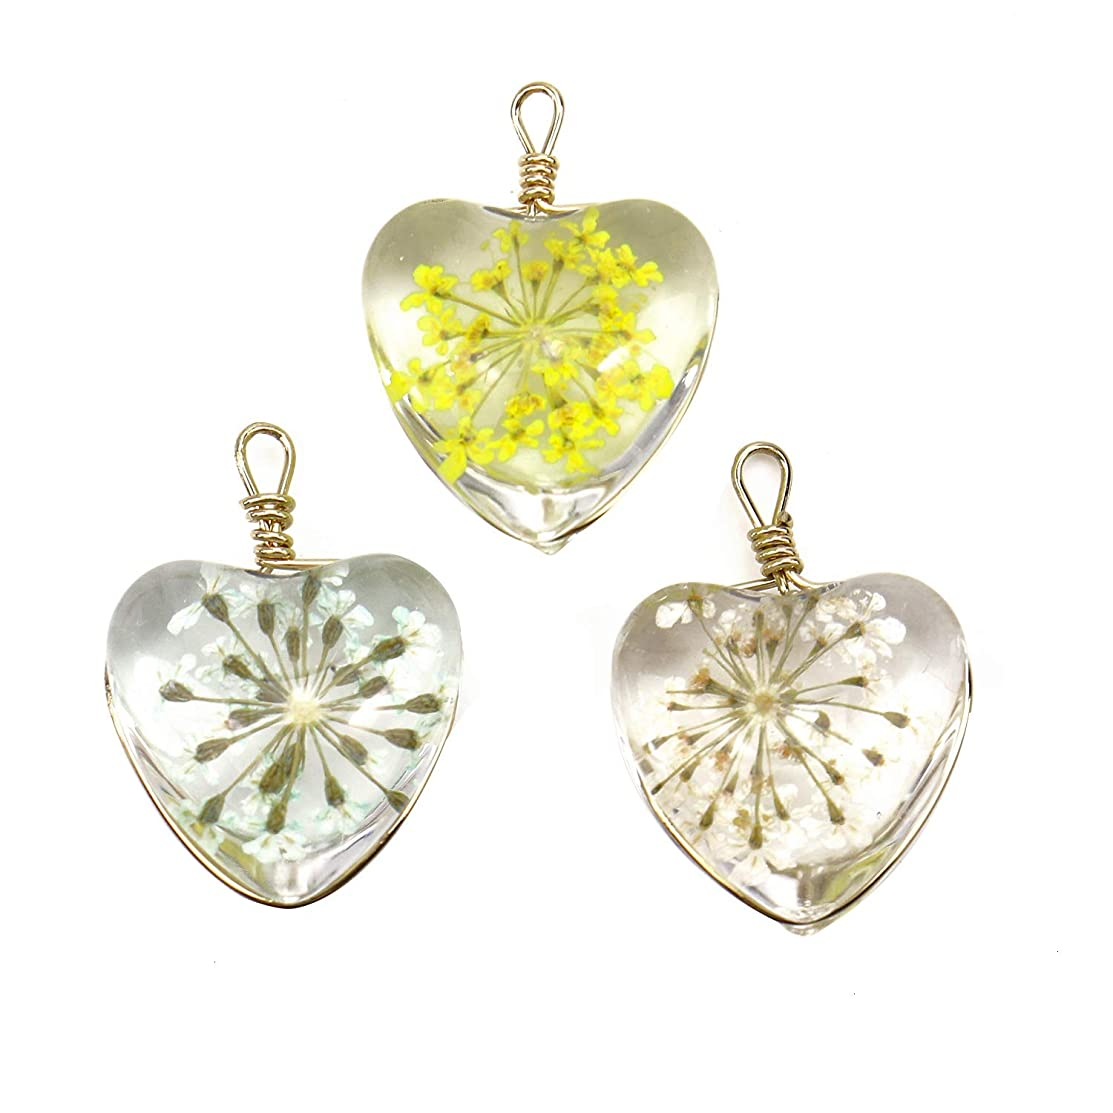 Monrocco 6 Pack Crystal Dried Flower Heart Glass Charms Pendants for Bracelets Jewelry Making